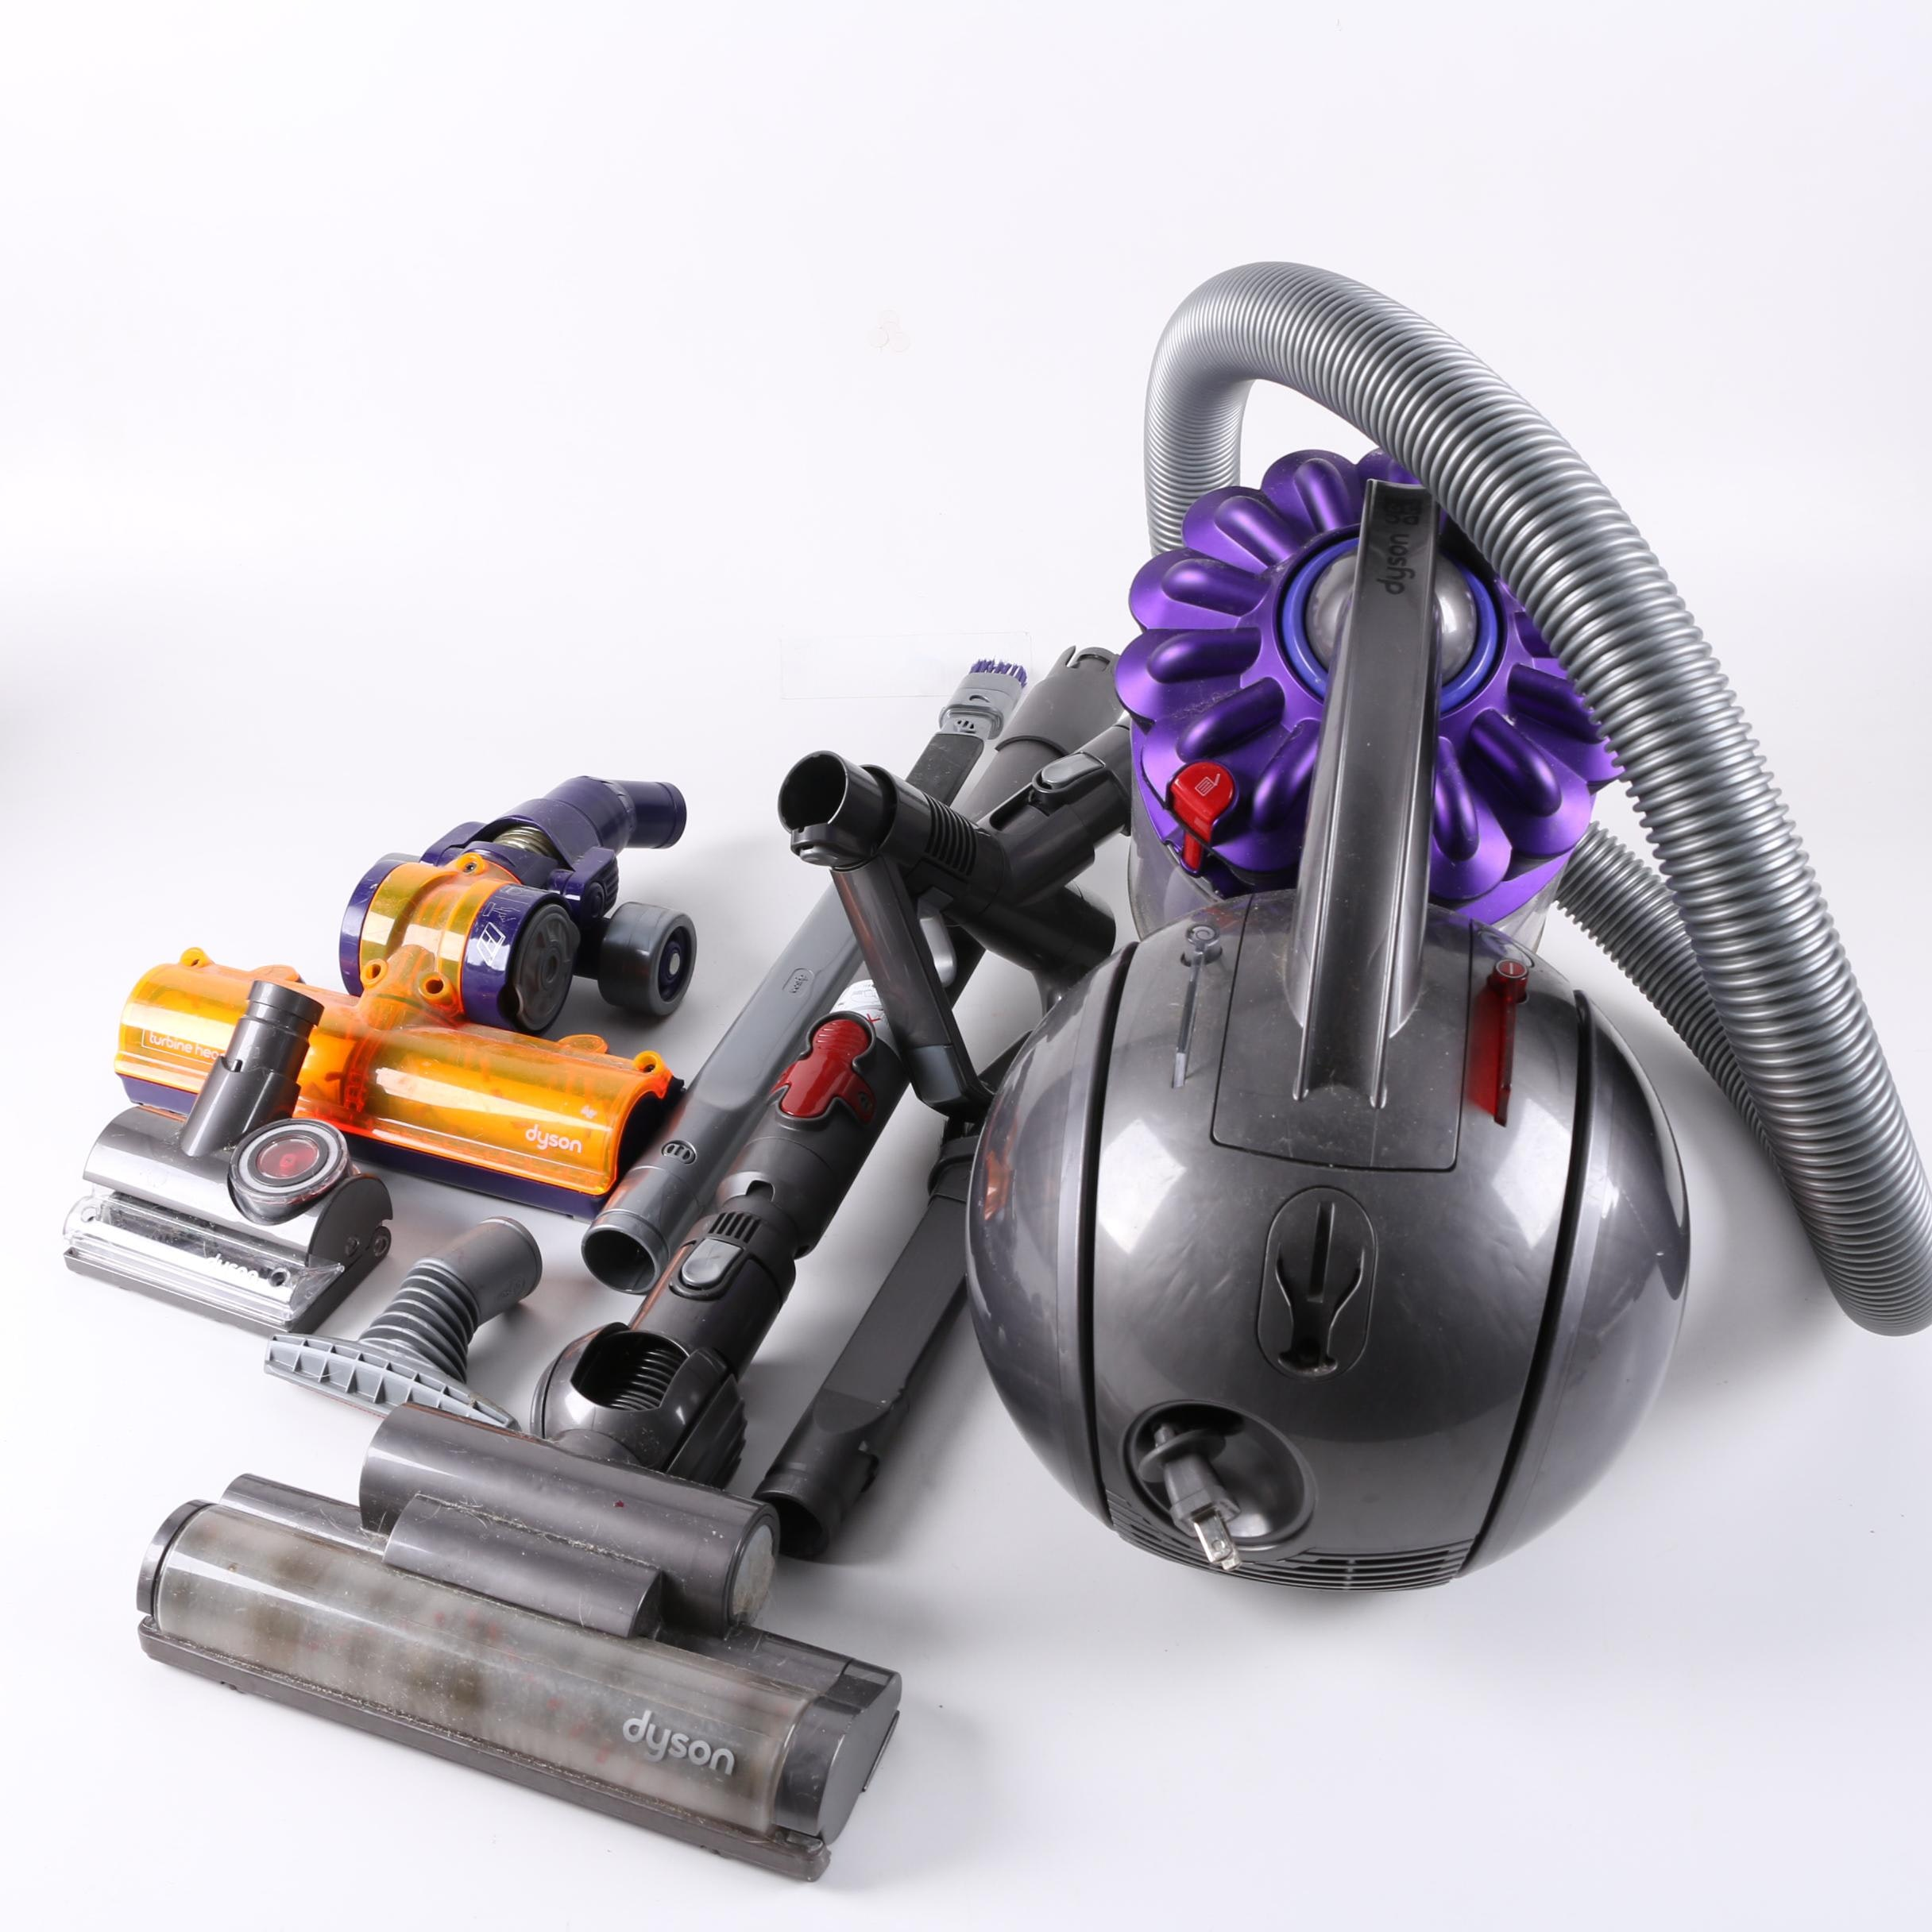 Dyson Ball Canister Vacuum Cleaner with Wand and Attachments